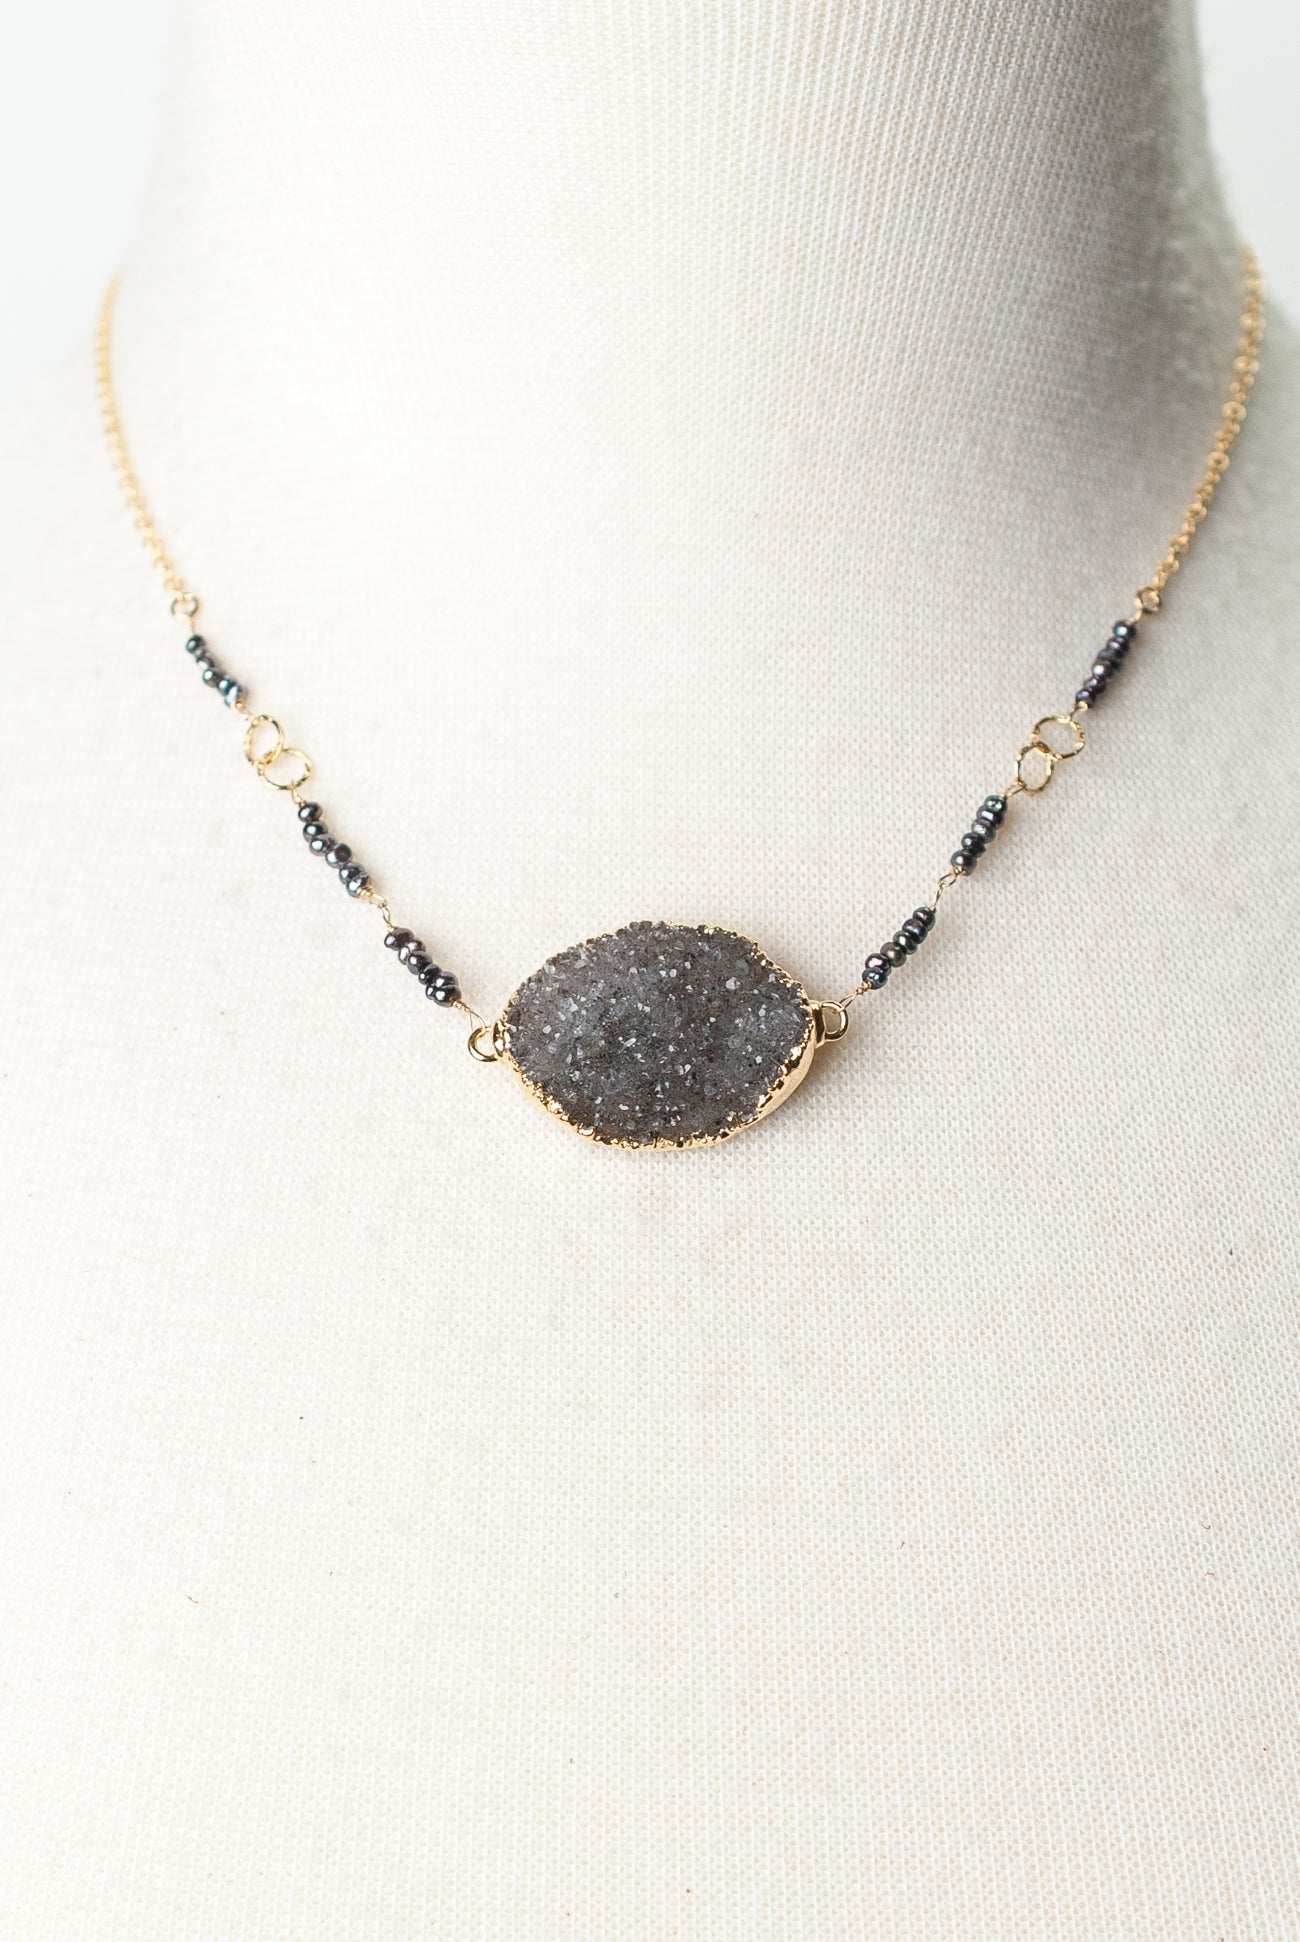 "One of a Kind 16-18"" Fresh Water Pearl, Druzy Necklace"